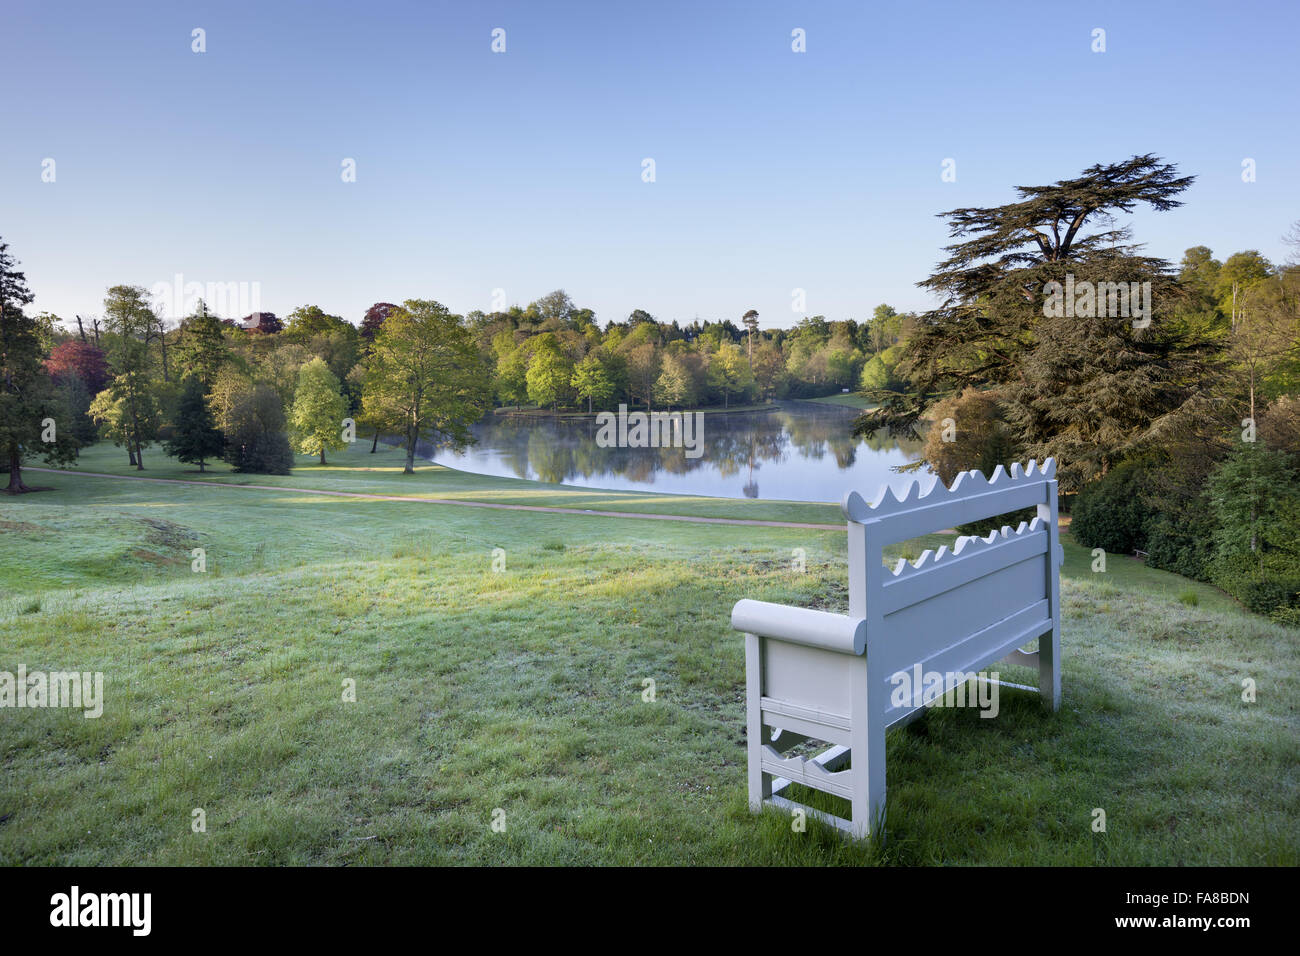 Bench overlooking the lake at claremont landscape garden surrey bench overlooking the lake at claremont landscape garden surrey workwithnaturefo